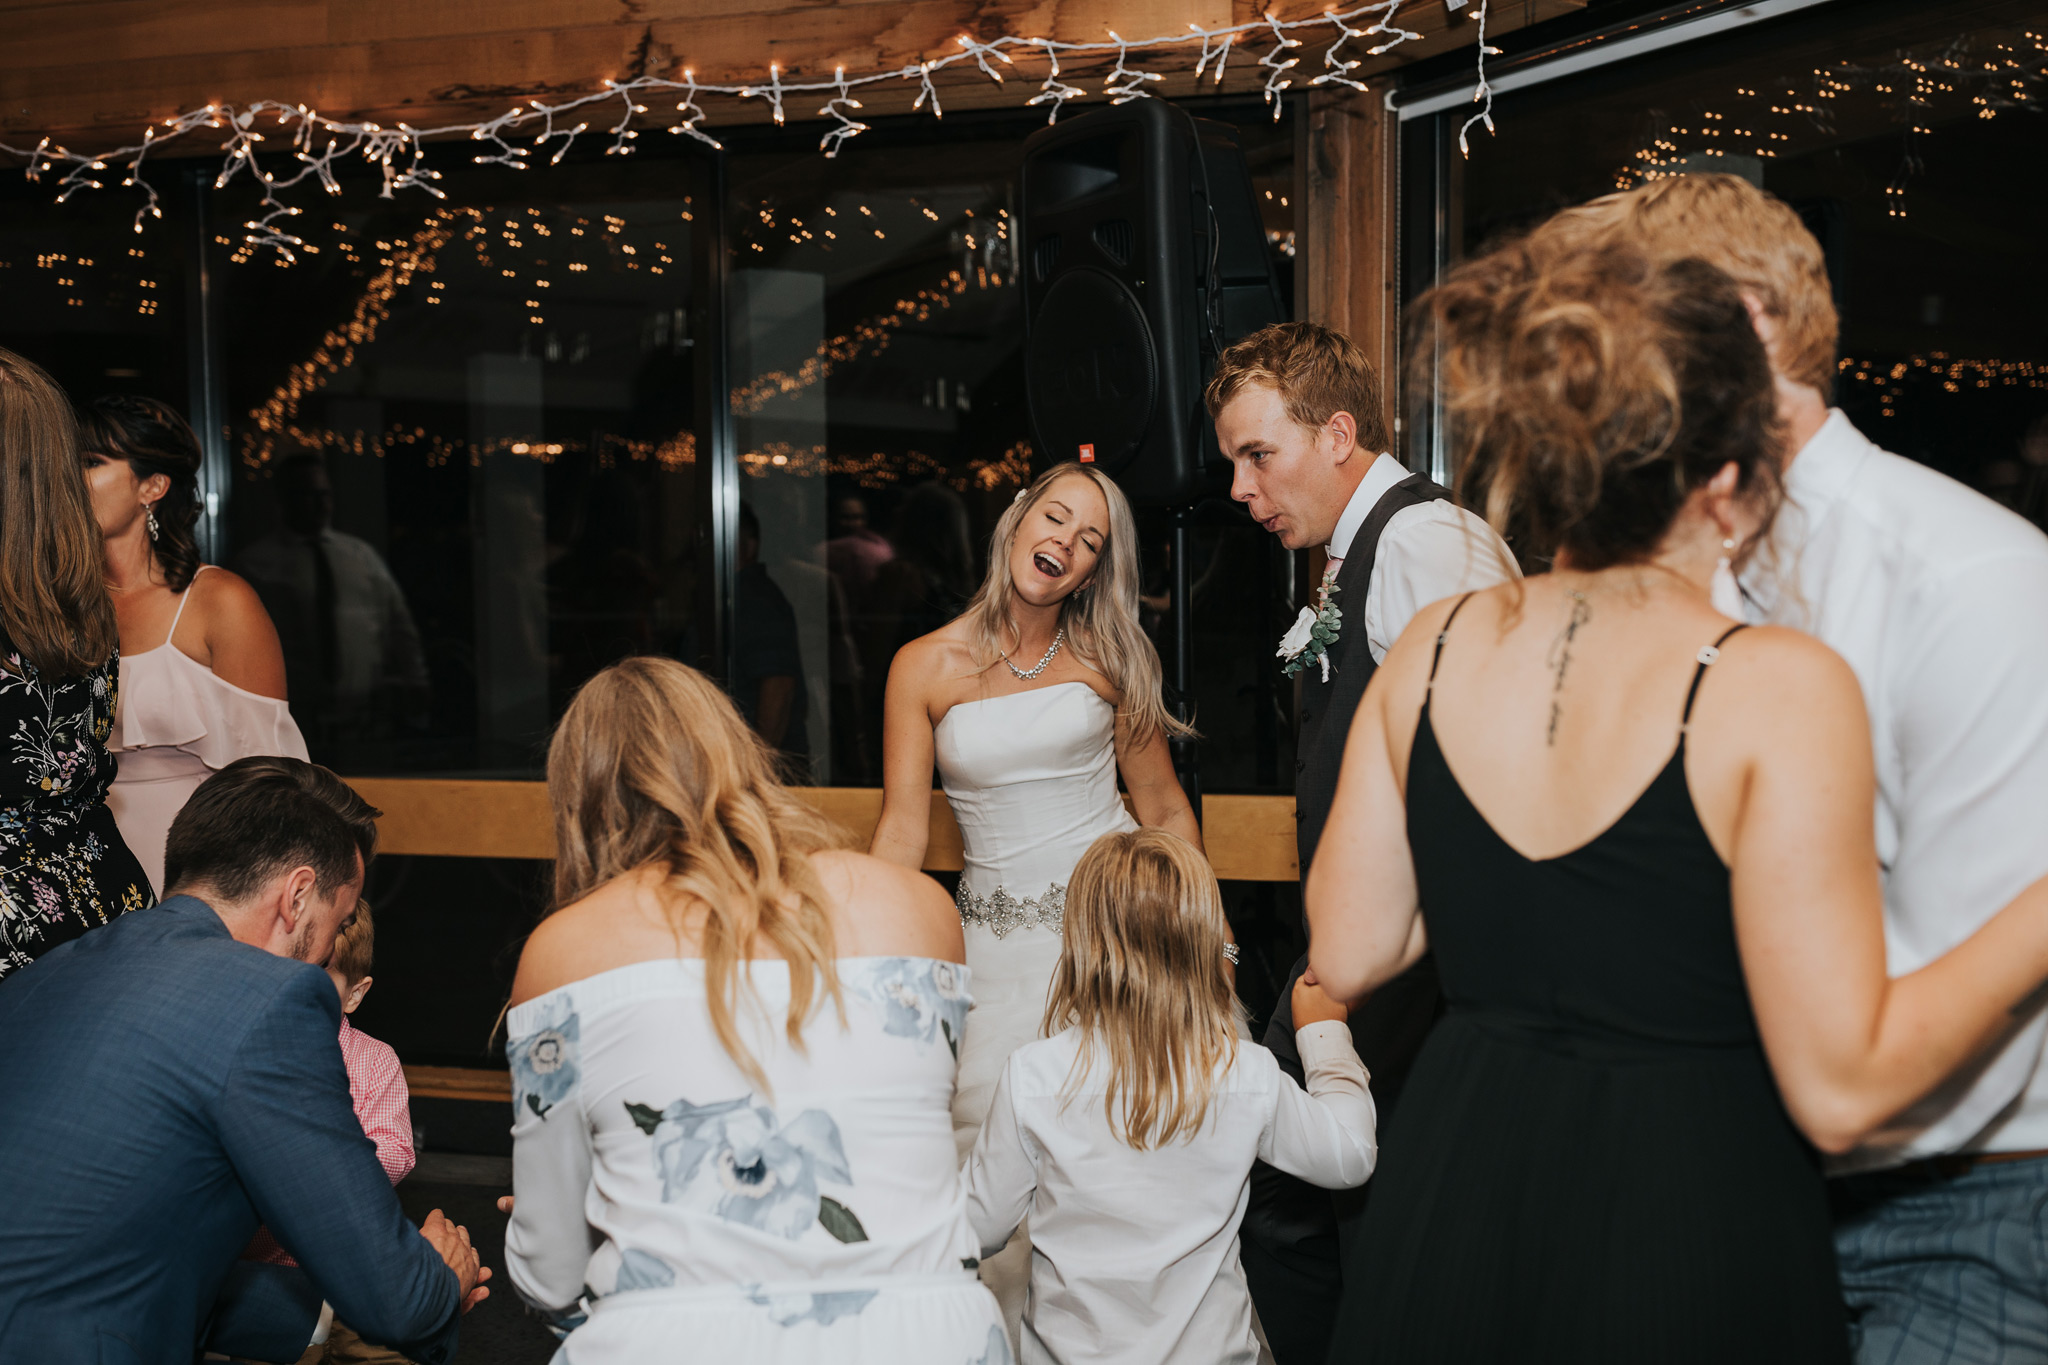 dance floor at wedding reception filled with guests and bride and groom